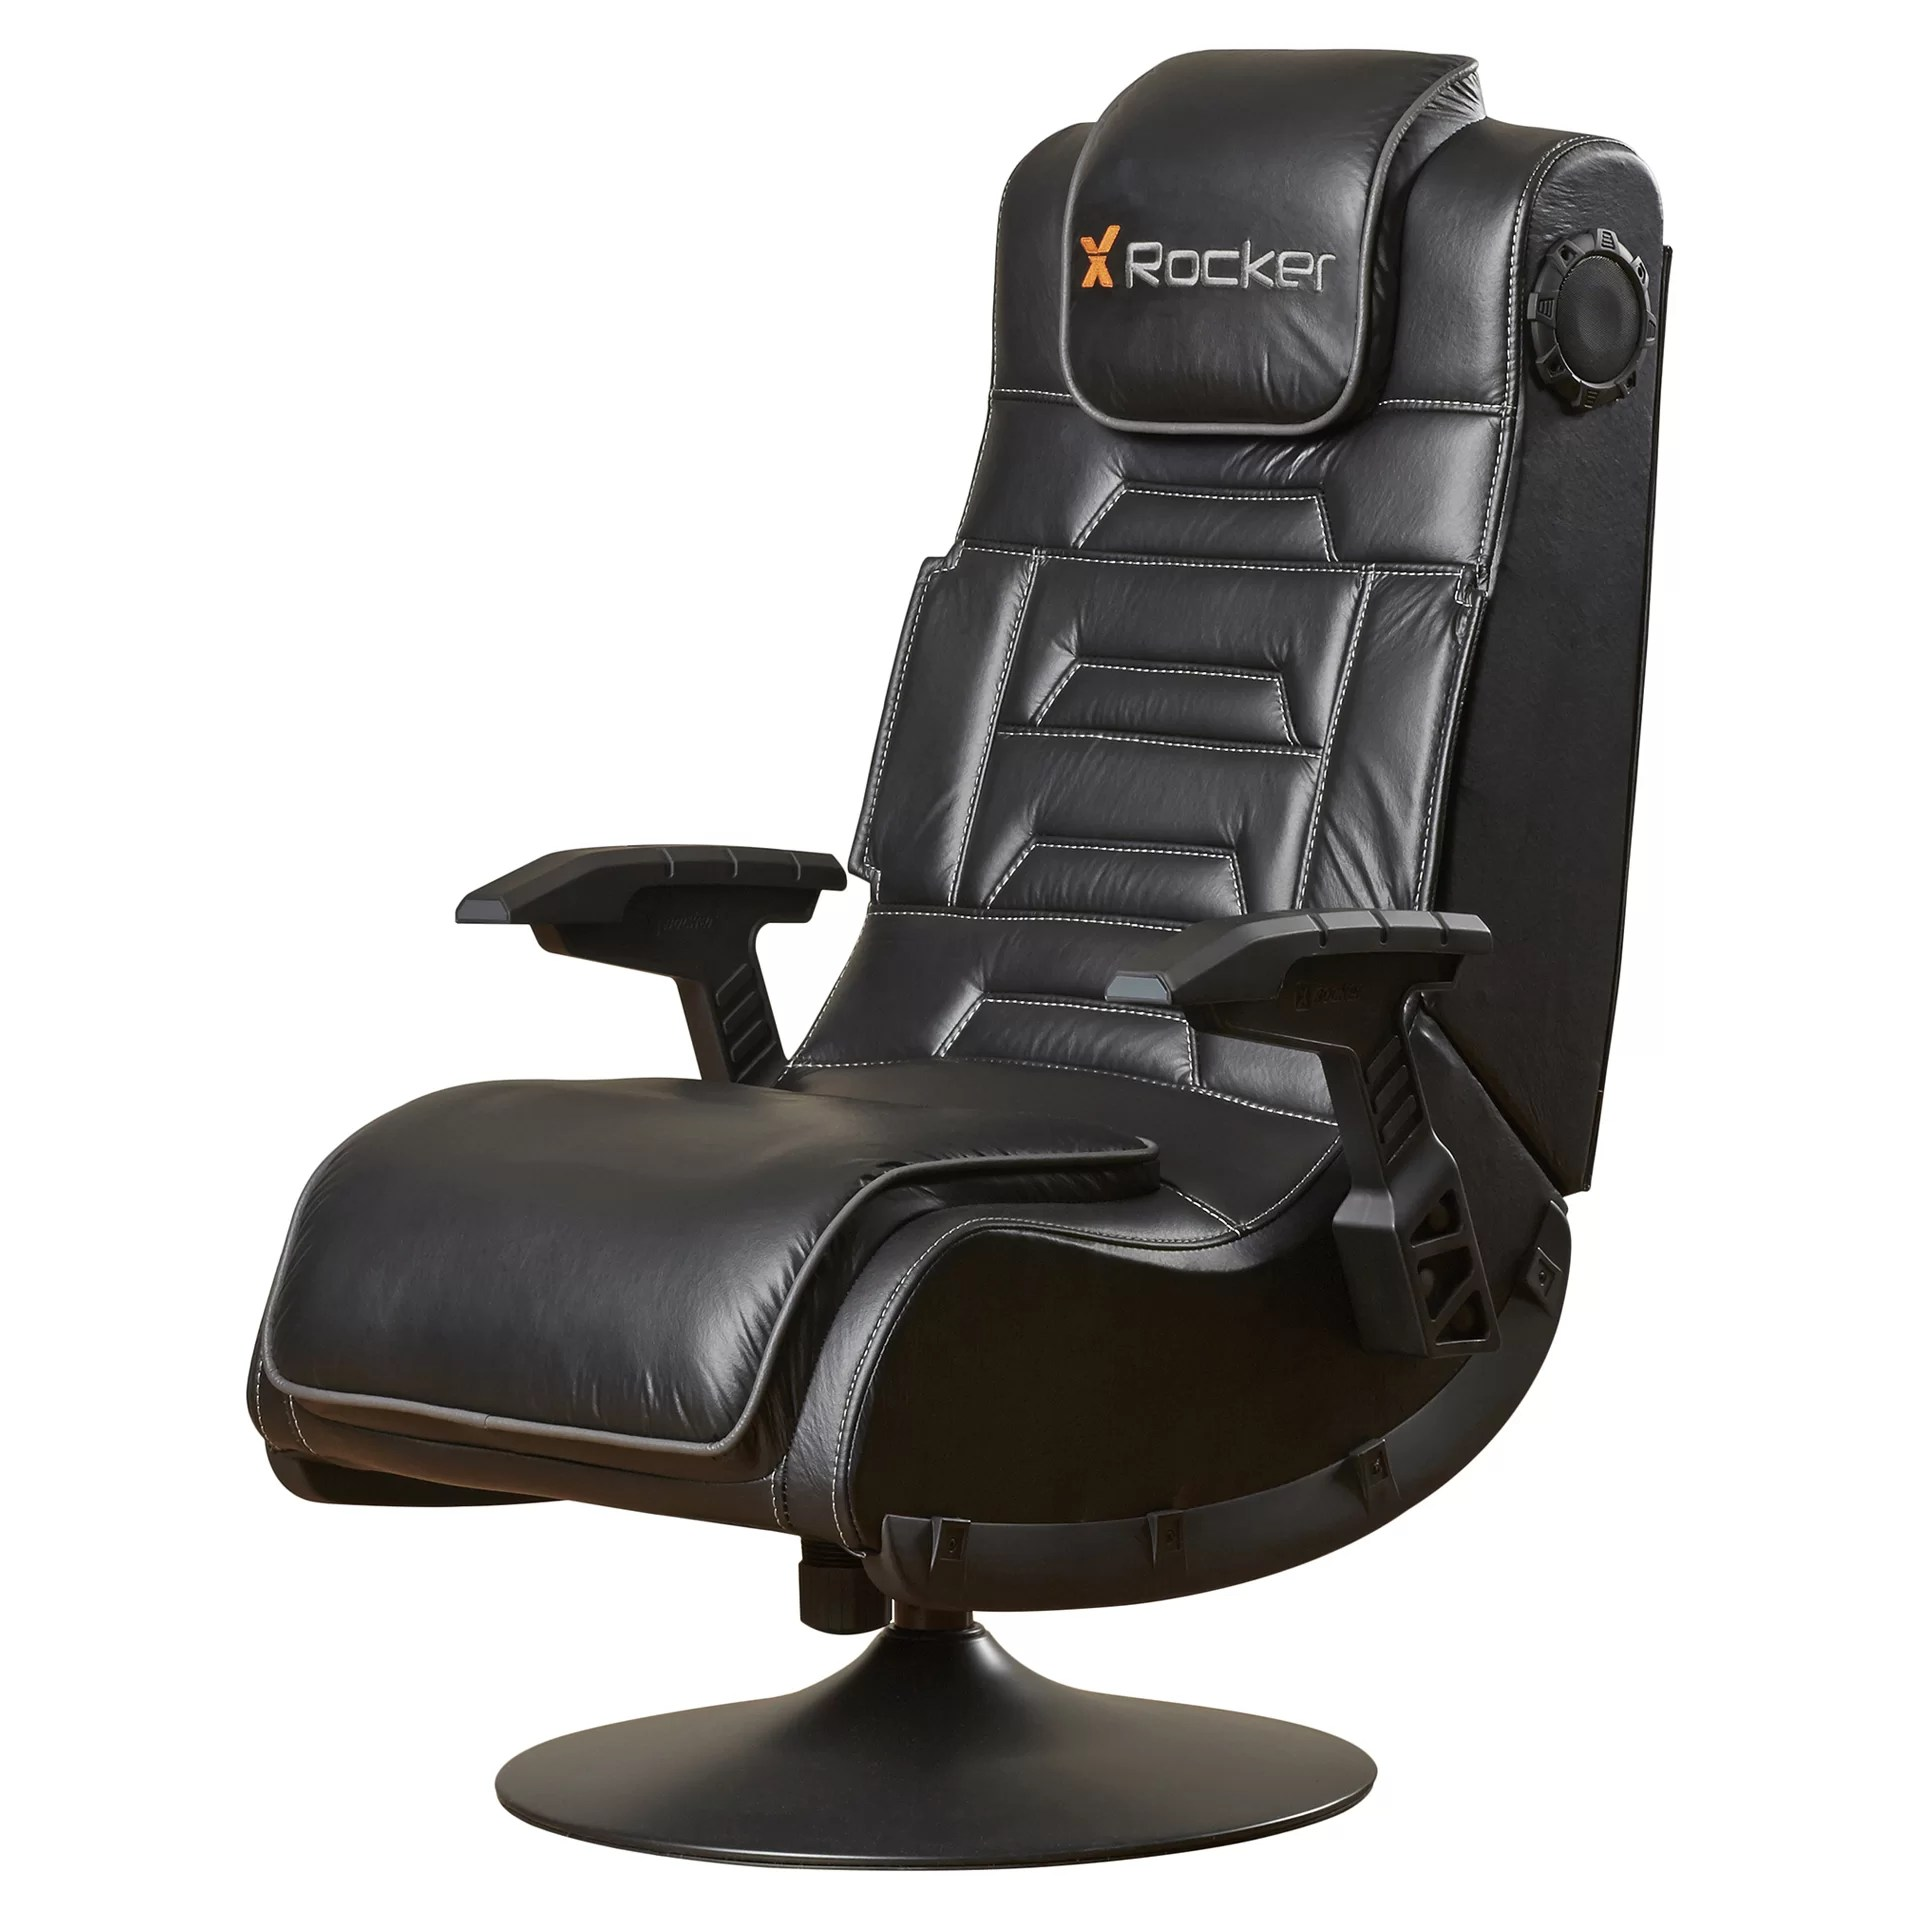 Gaiming Chair Wade Logan Judah Gaming Chair And Reviews Wayfair